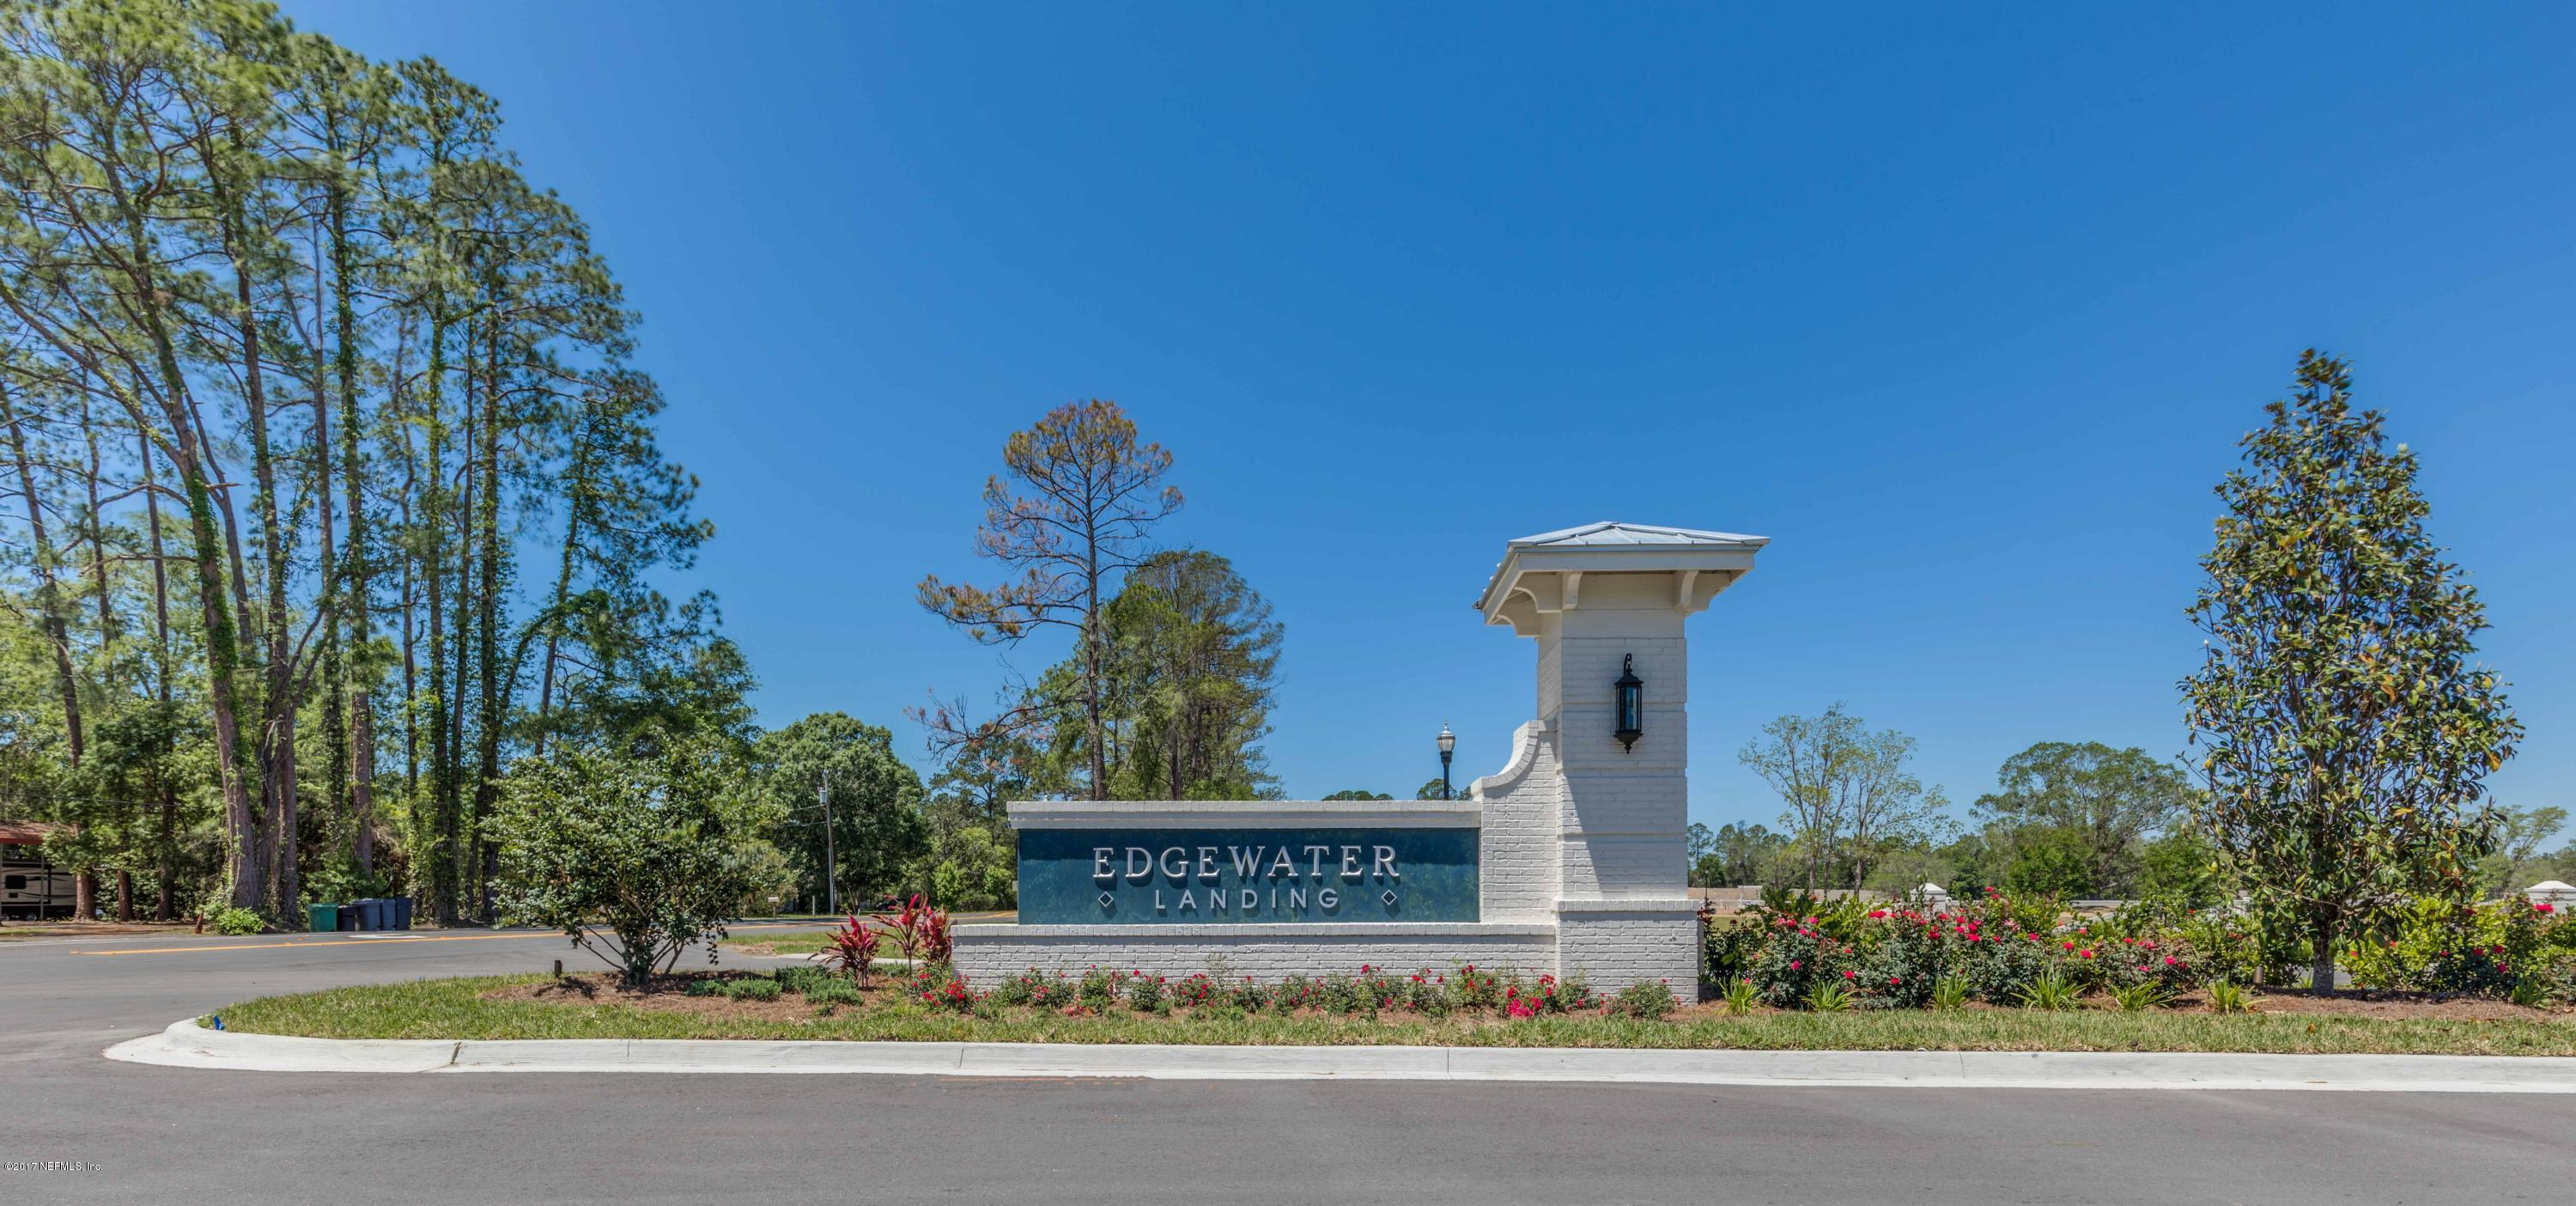 3082 FREE BIRD, GREEN COVE SPRINGS, FLORIDA 32043, 4 Bedrooms Bedrooms, ,2 BathroomsBathrooms,Residential,For sale,FREE BIRD,1059830